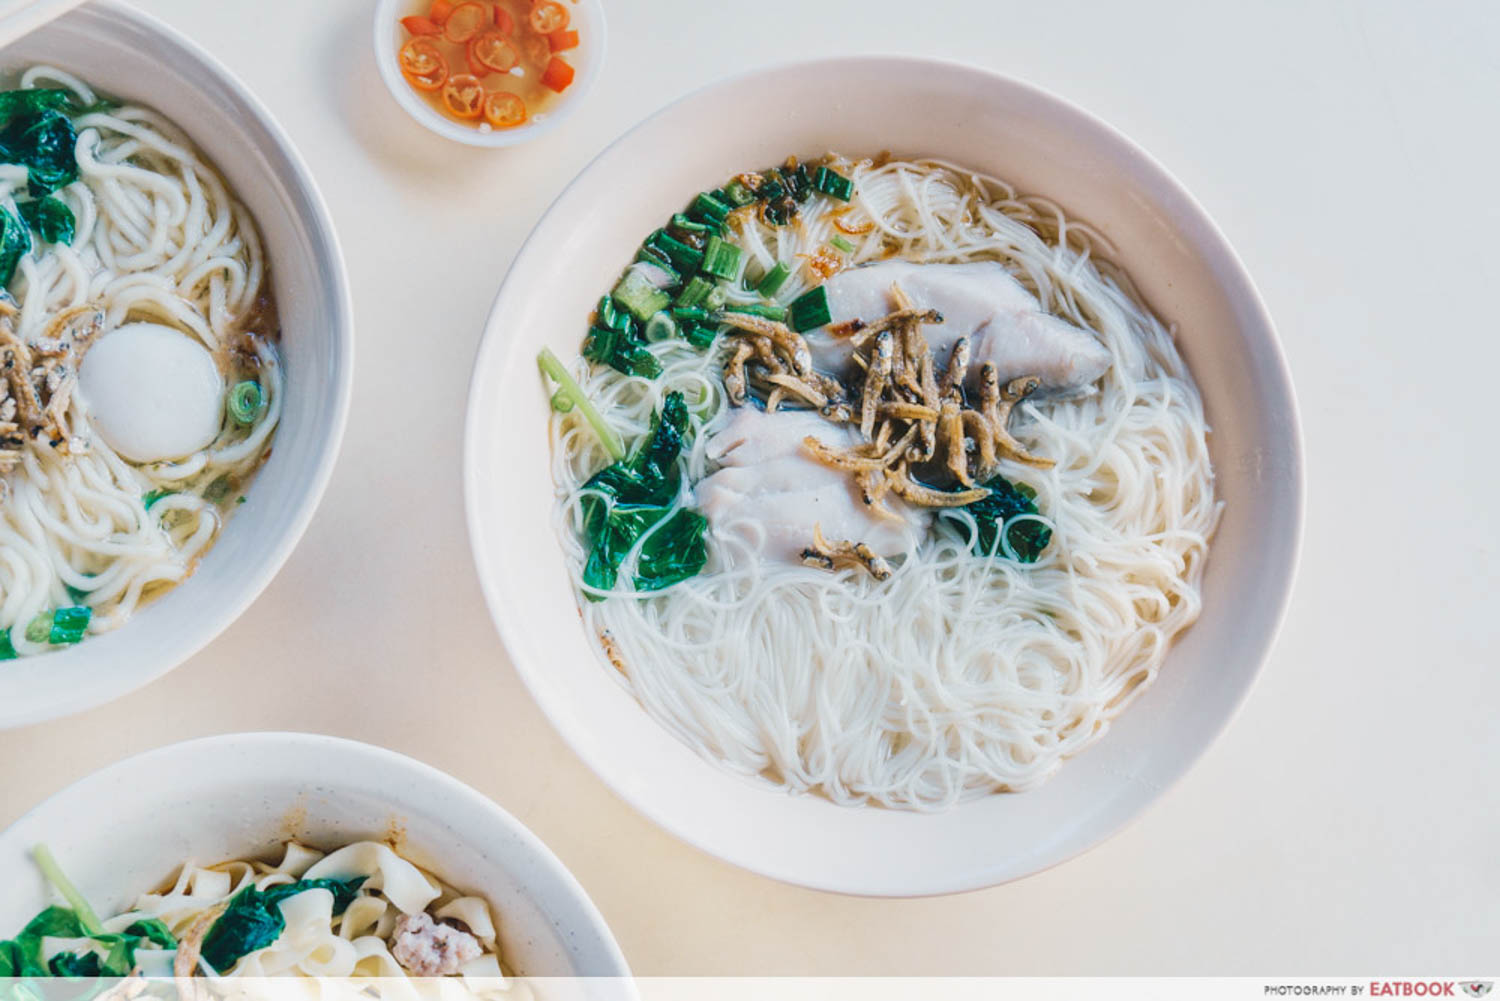 133 Mien Fen Guo - Sliced fish mee sua